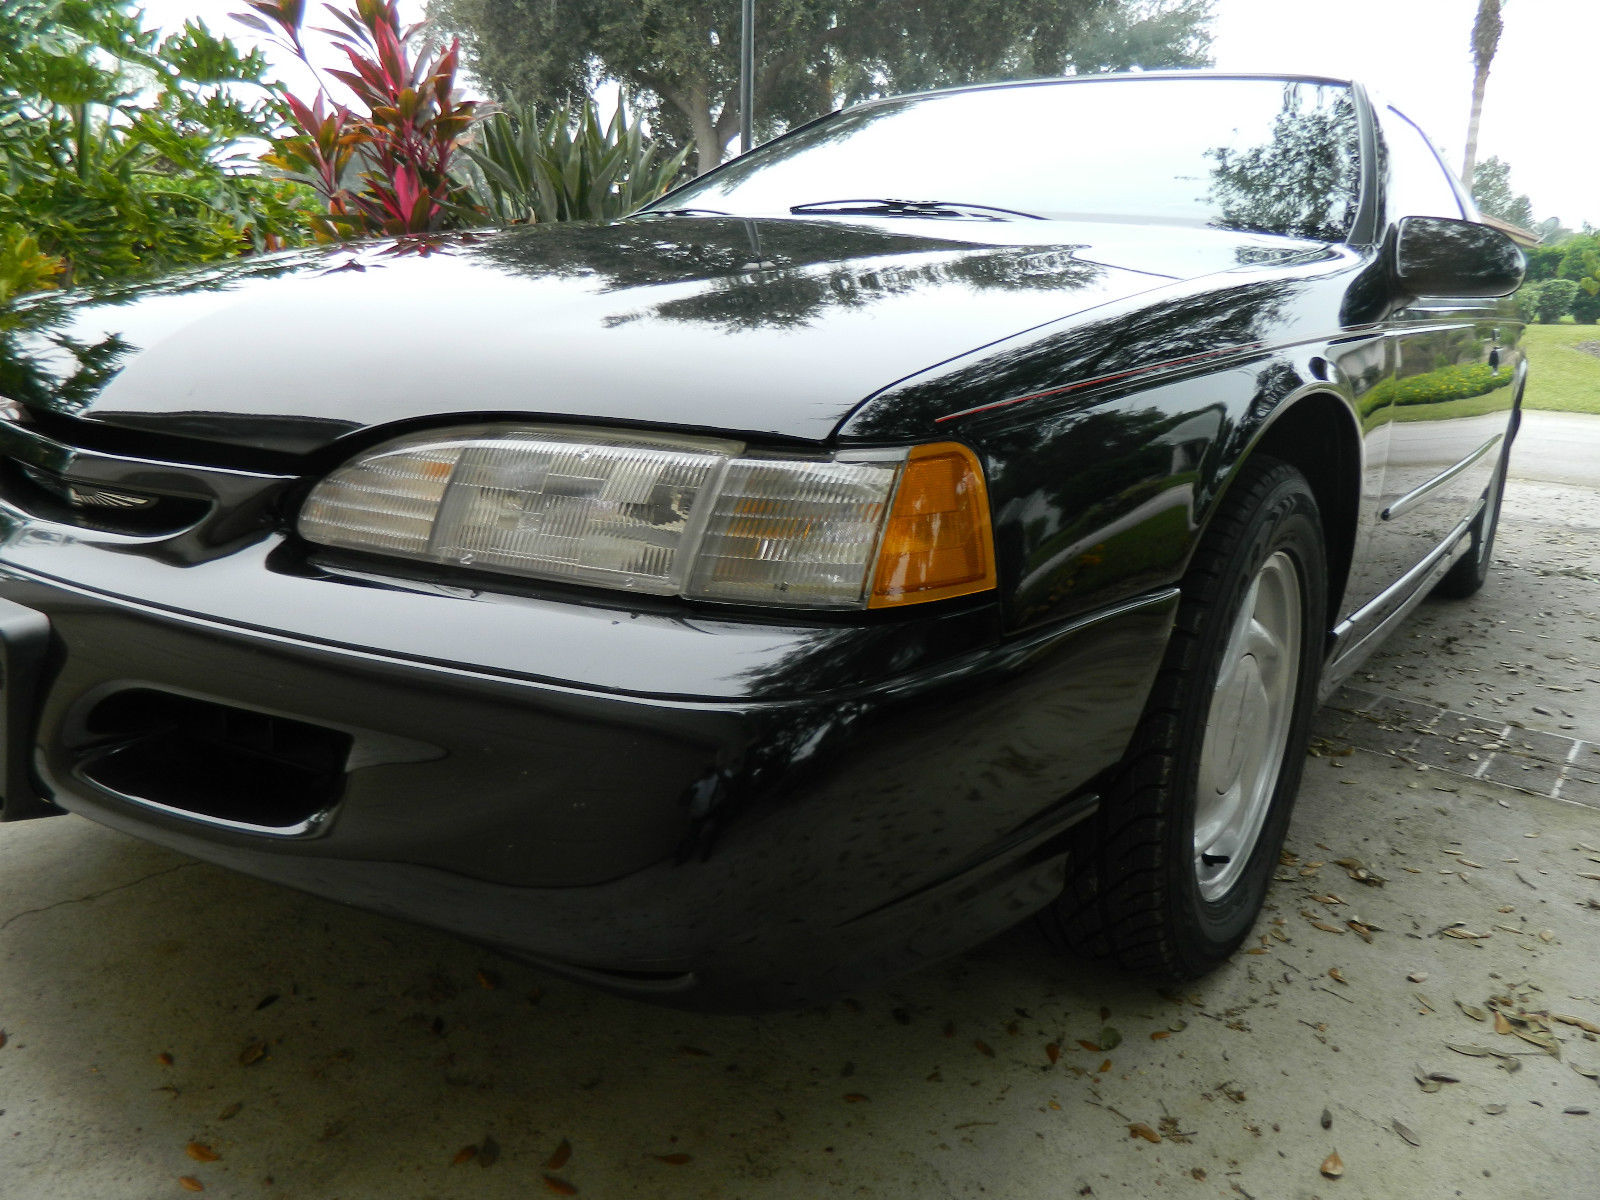 1994 Ford Thunderbird SC SUPER CHARGED 12 000 original miles 5 SPEED